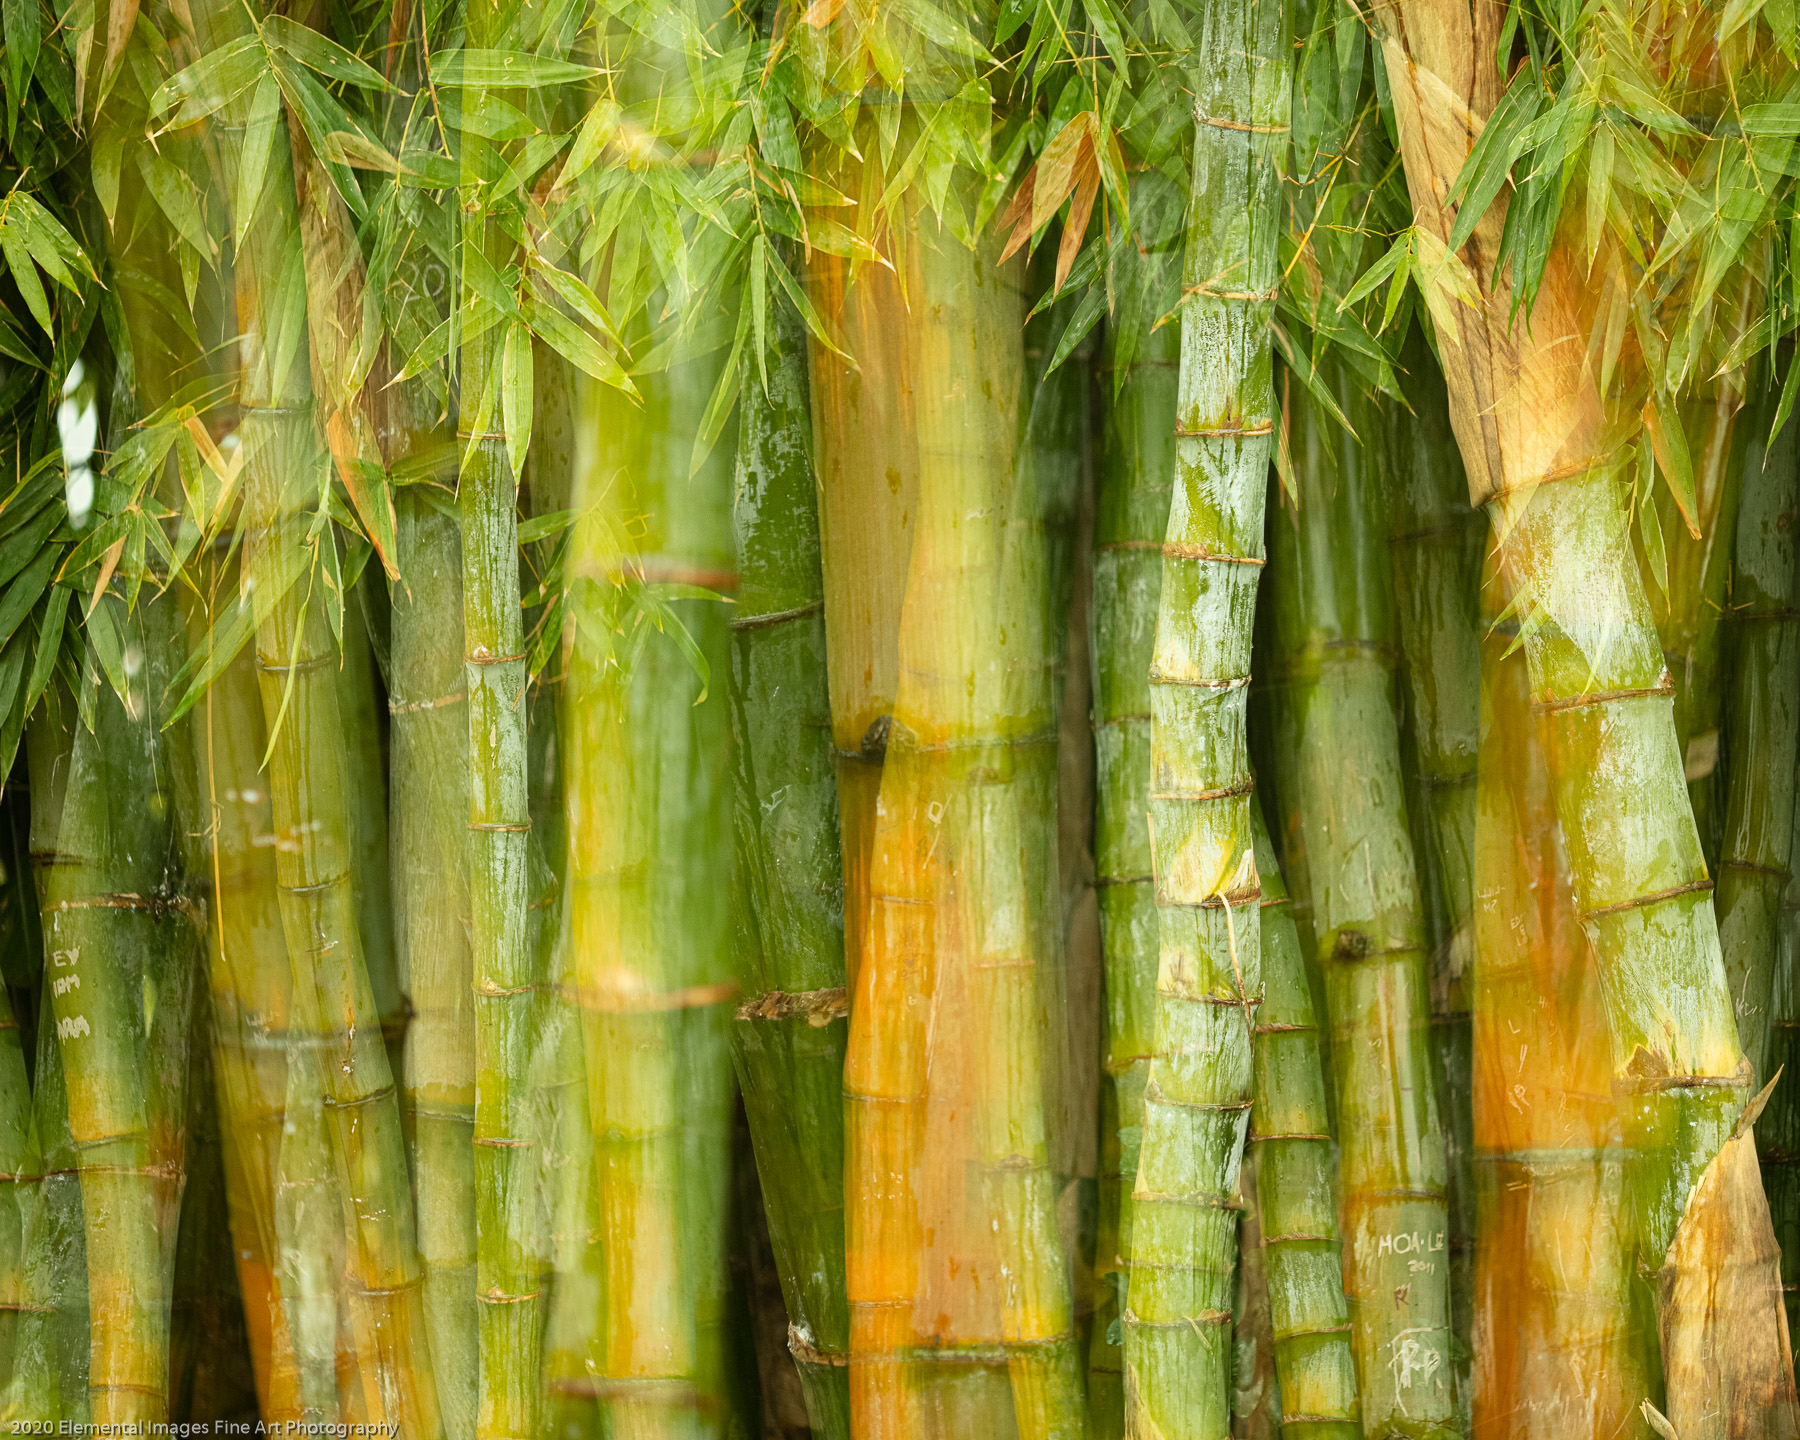 Bamboo Cluster   San Marino   CA    - © 2020 Elemental Images Fine Art Photography - All Rights Reserved Worldwide